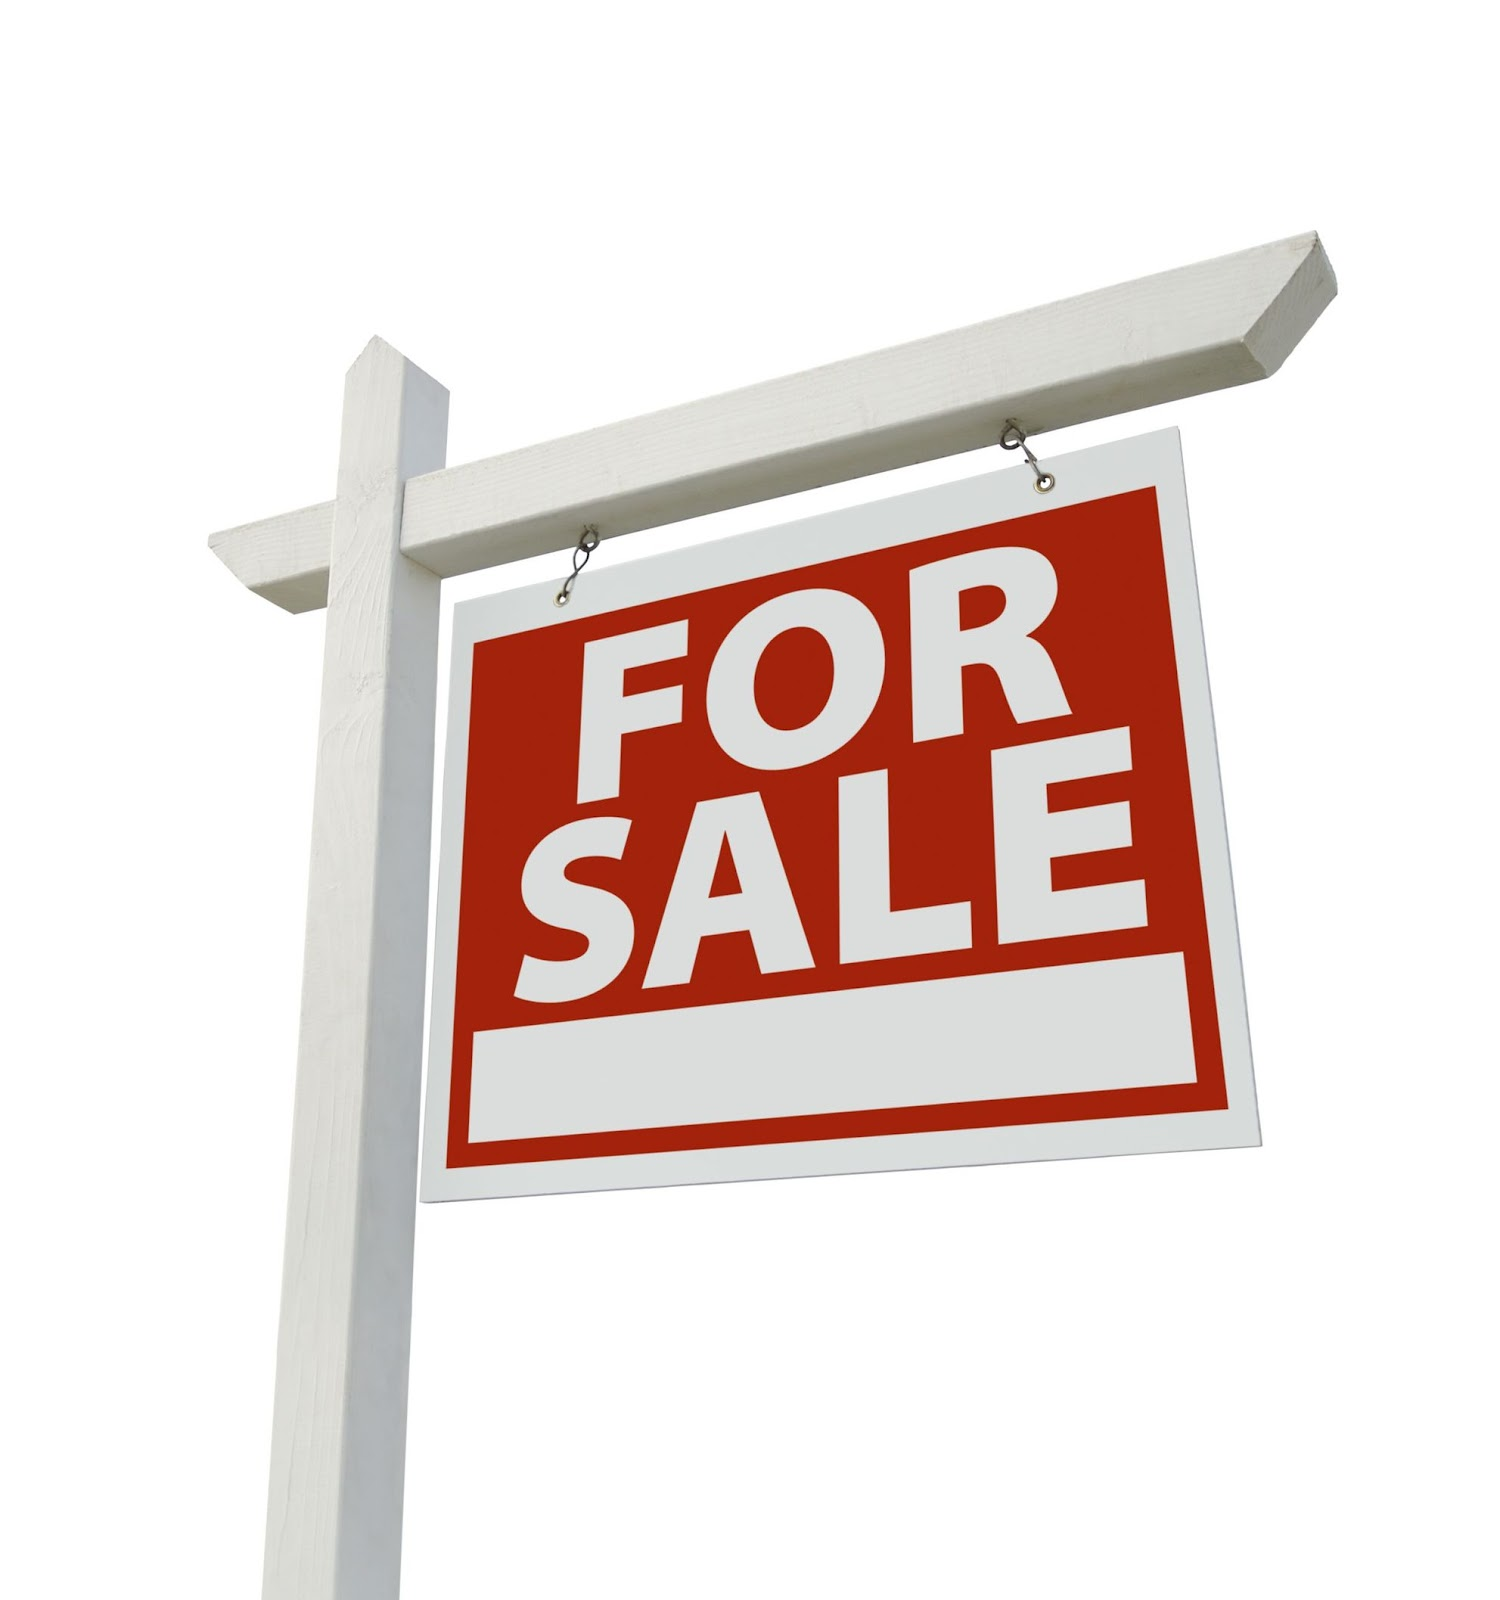 For Sale Sign Png - Free For Sale Sign Png, Download Free Clip Art, Free Clip Art on ...